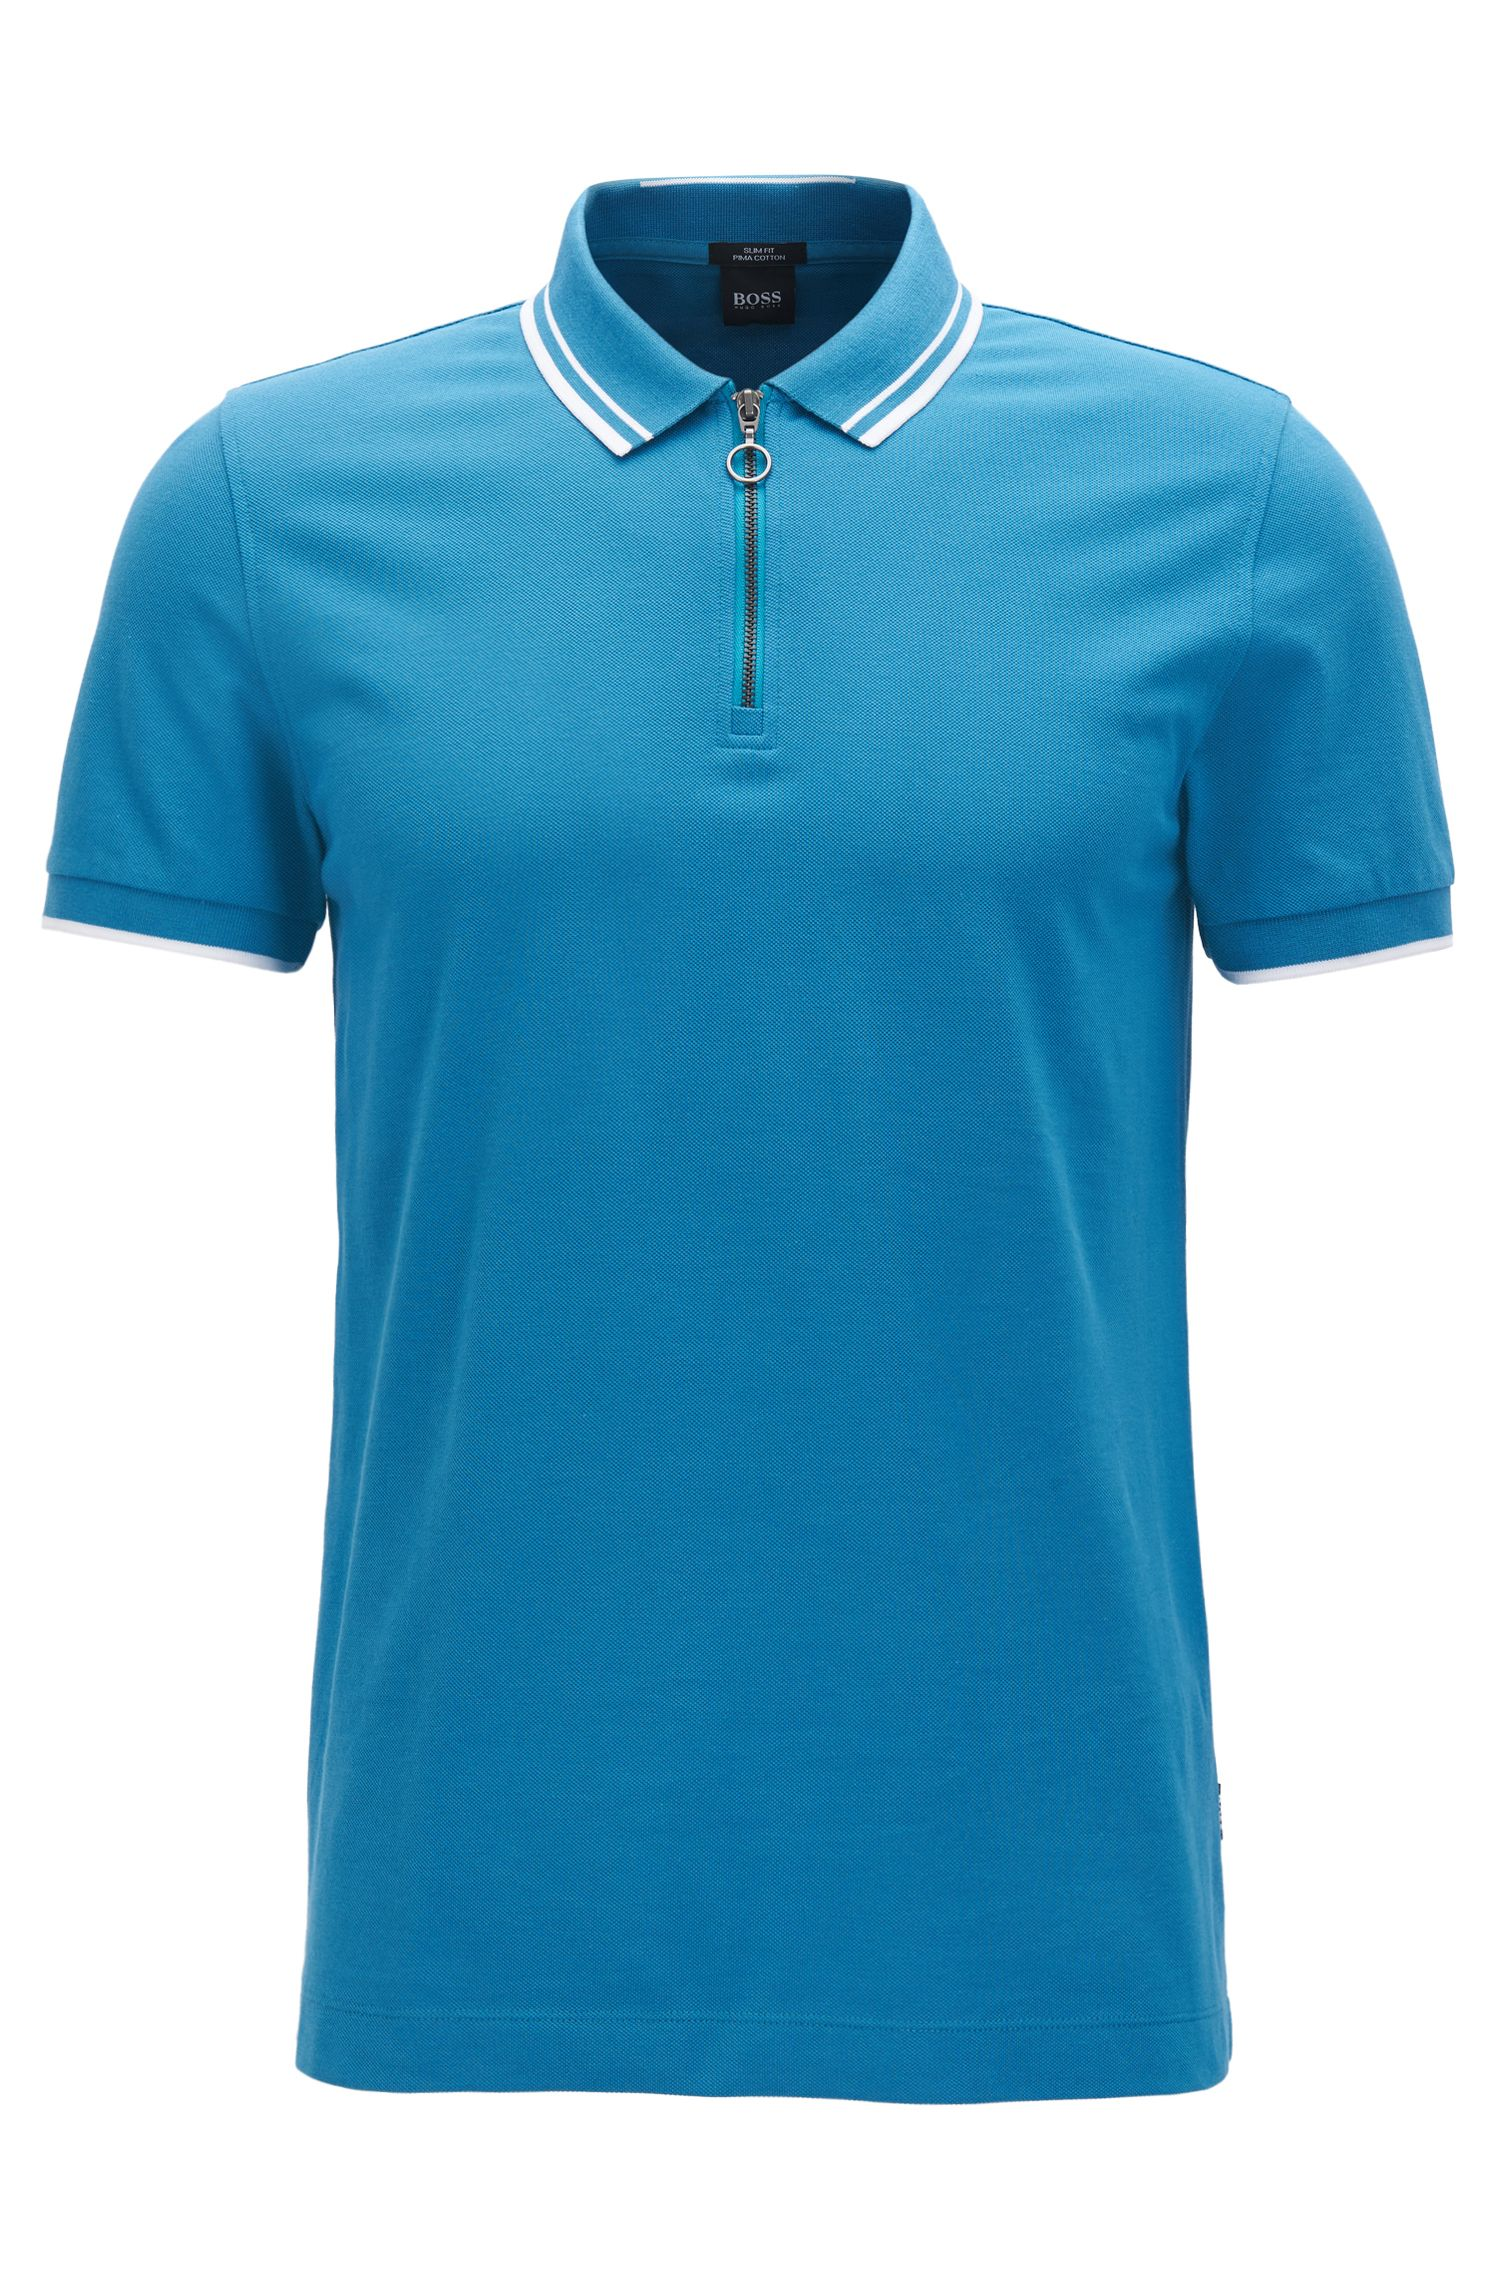 Slim-fit zip-neck cotton polo shirt